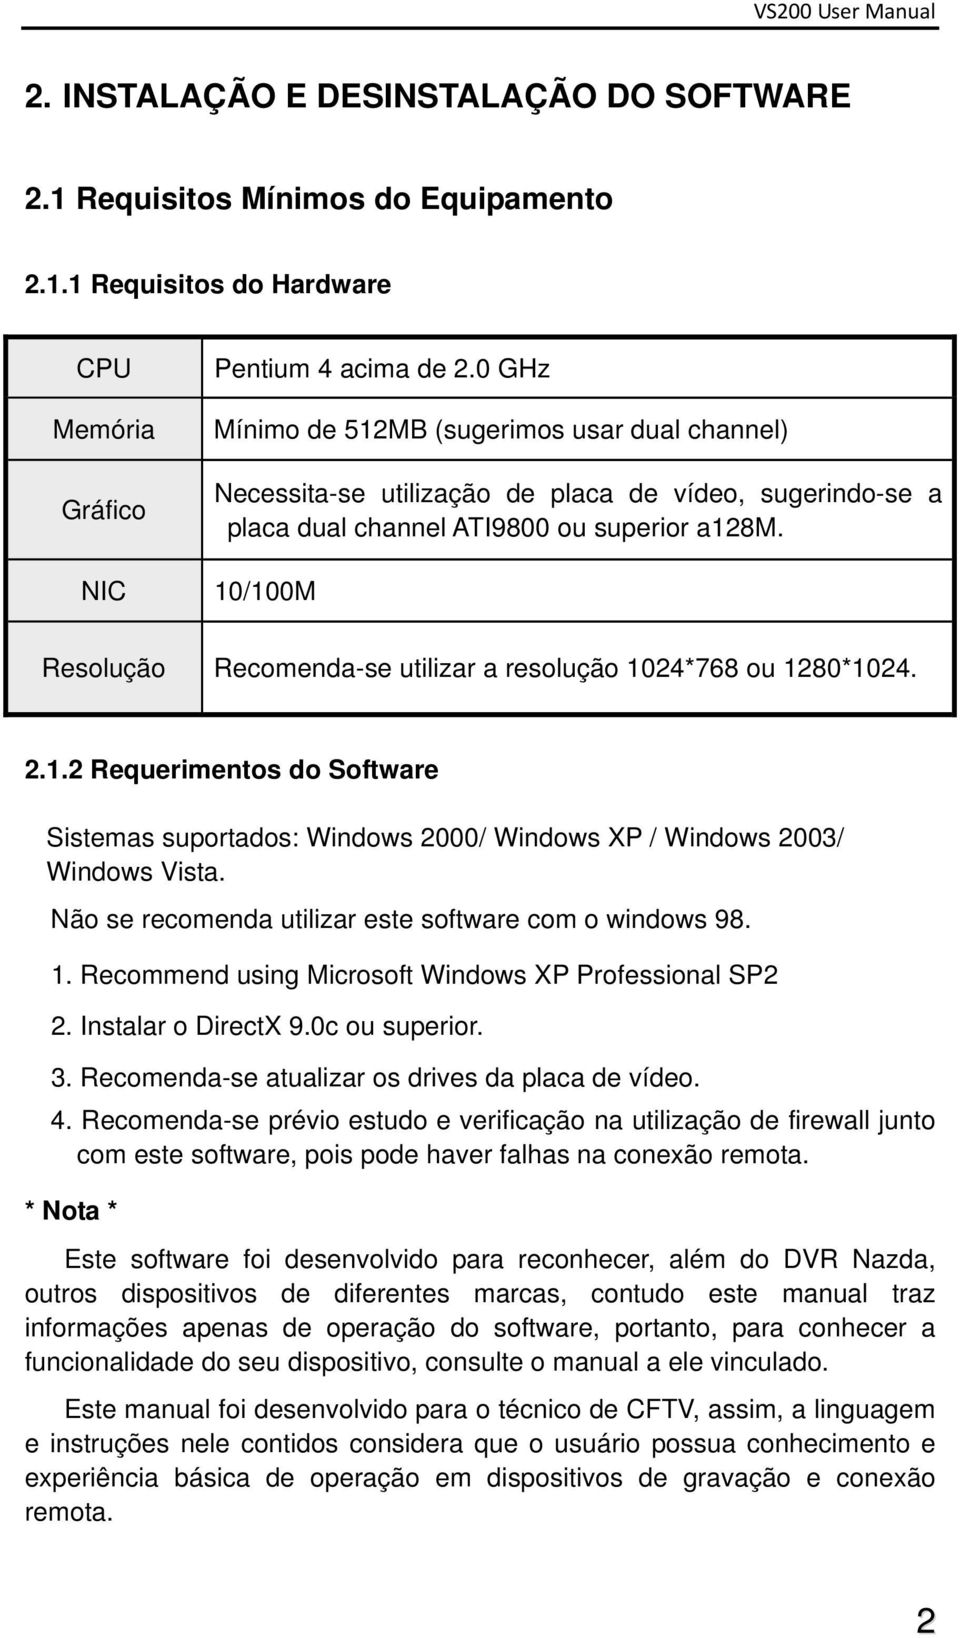 NIC 10/100M Resolução Recomenda-se utilizar a resolução 1024*768 ou 1280*1024. 2.1.2 Requerimentos do Software Sistemas suportados: Windows 2000/ Windows XP / Windows 2003/ Windows Vista.